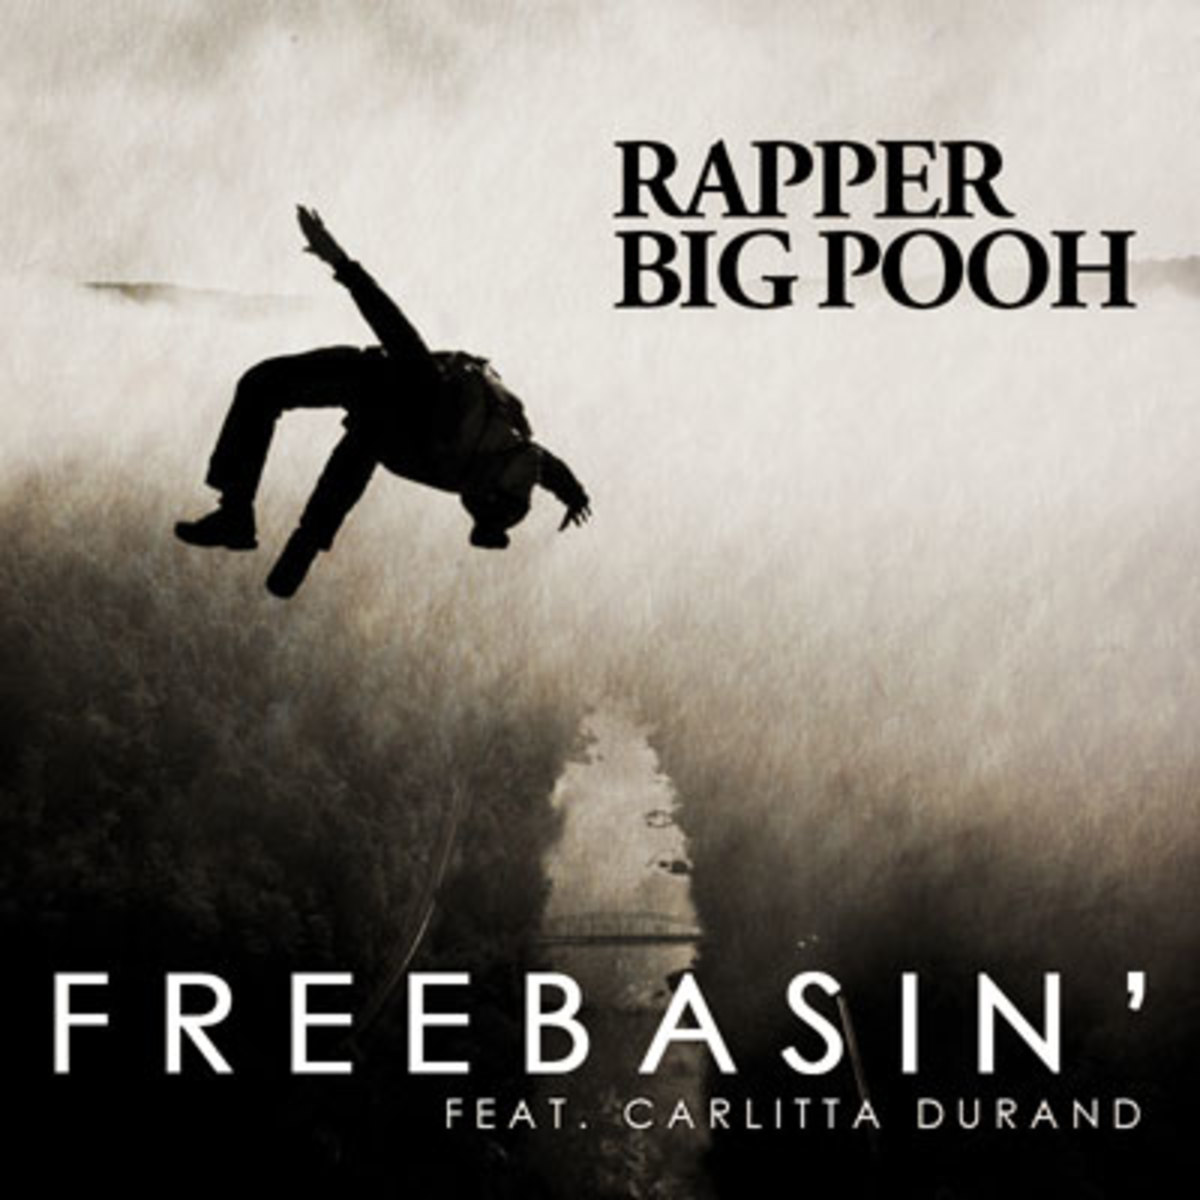 rapperbigpooh-freebasin.jpg